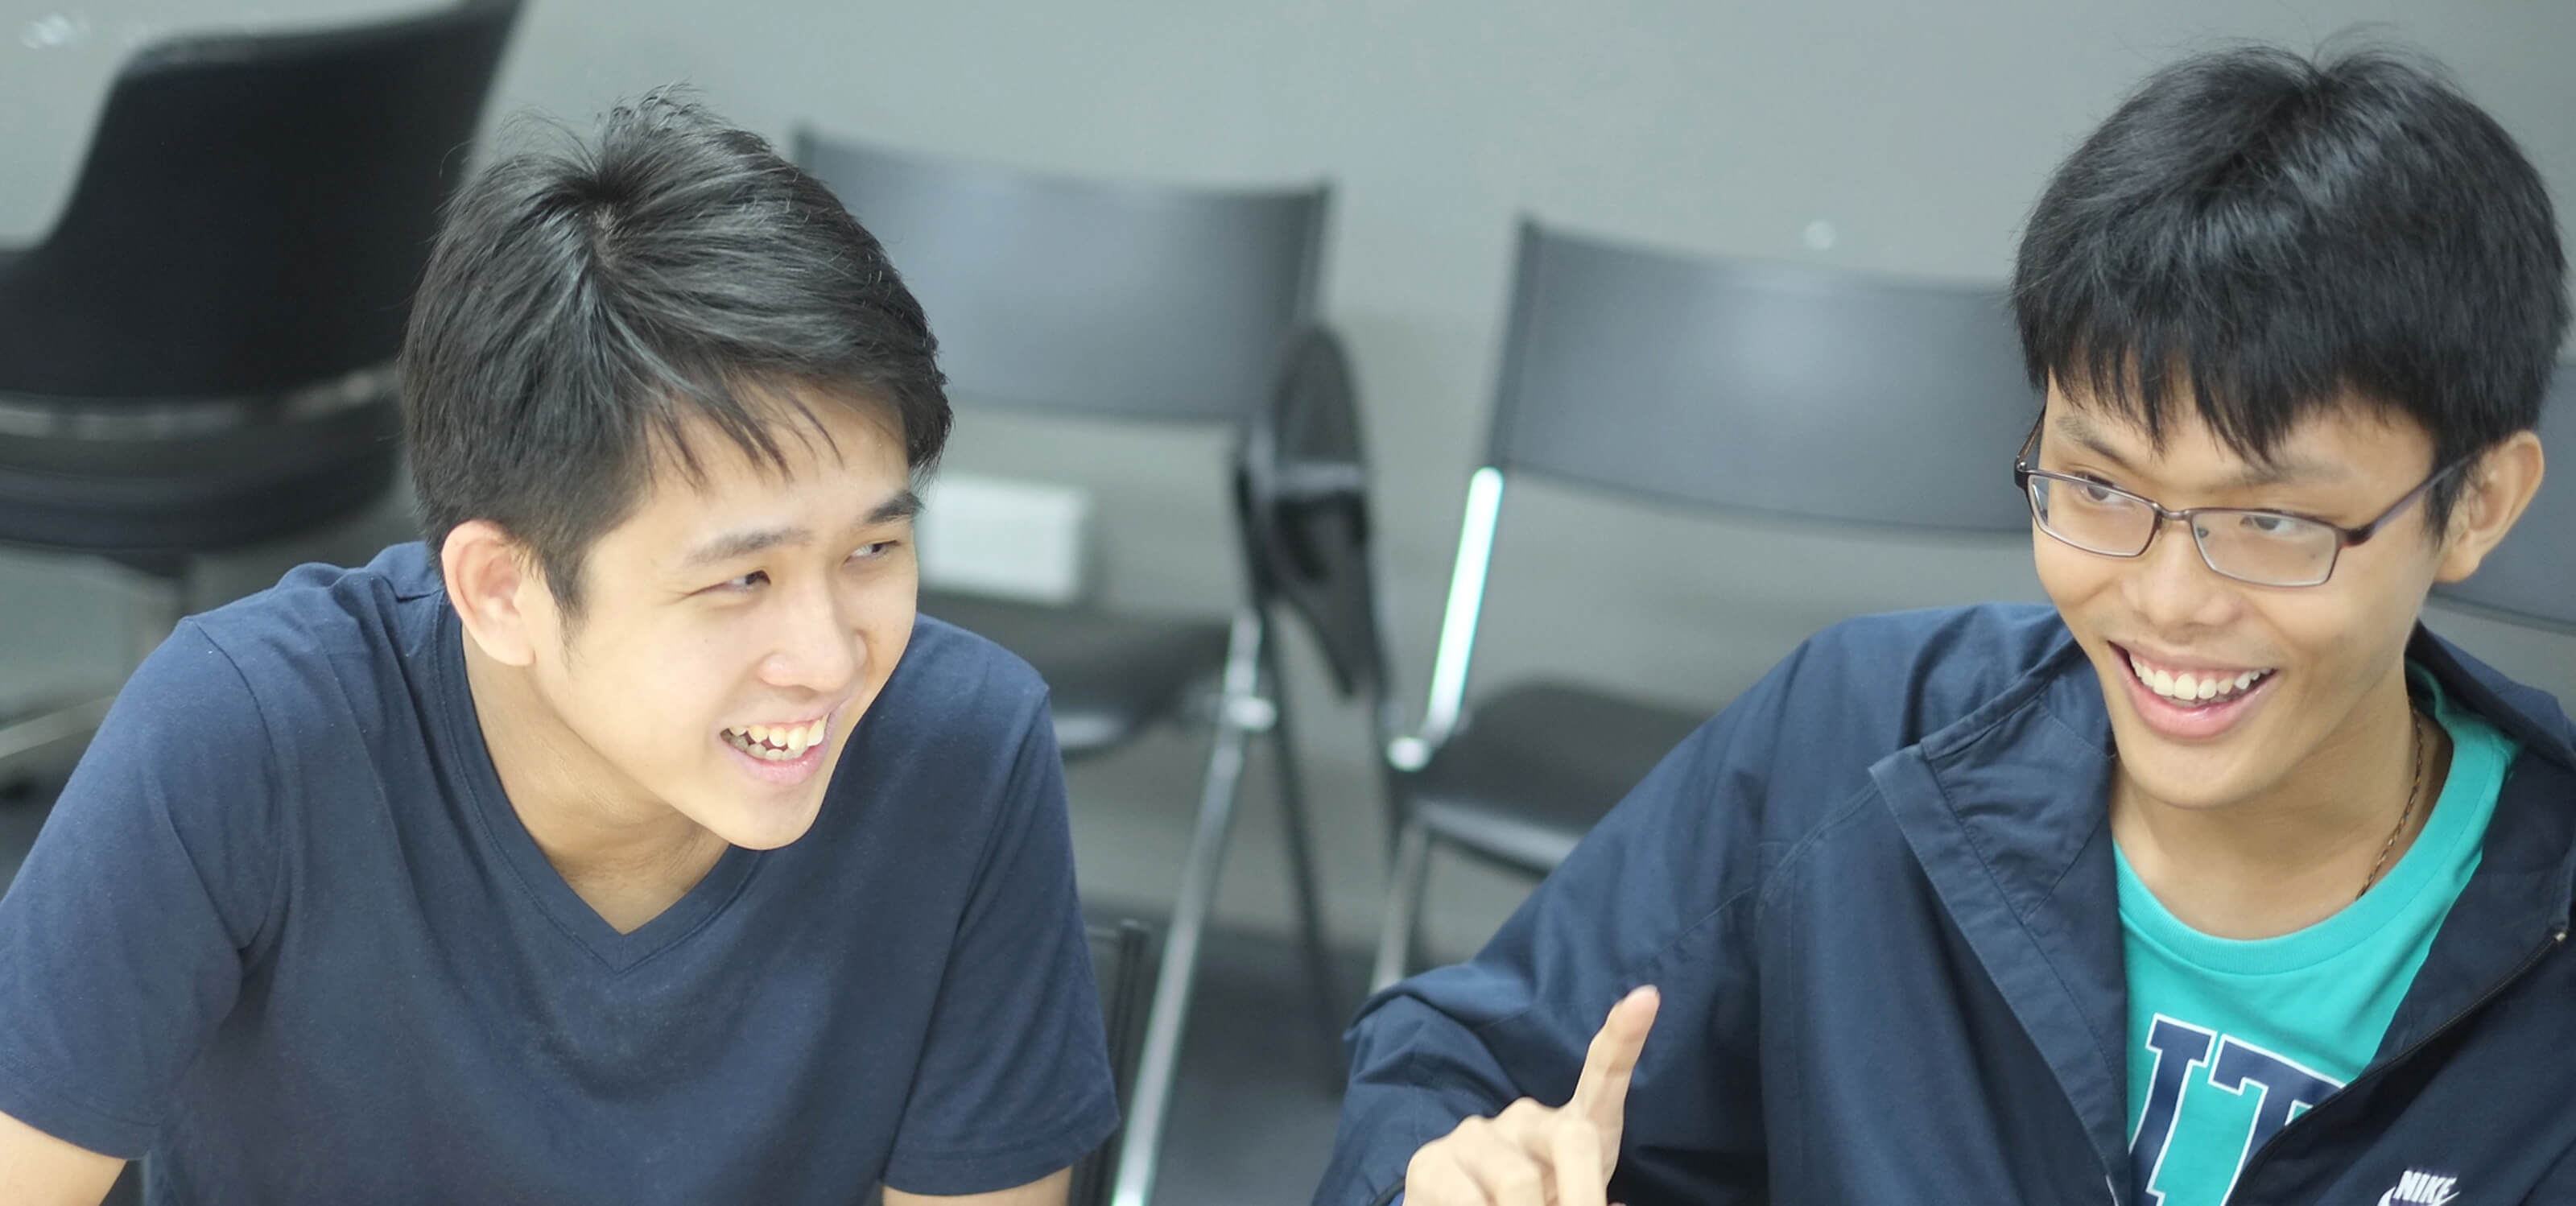 Graduates Chin Yong Kian and Lim Chian Song sit at a desk laughing